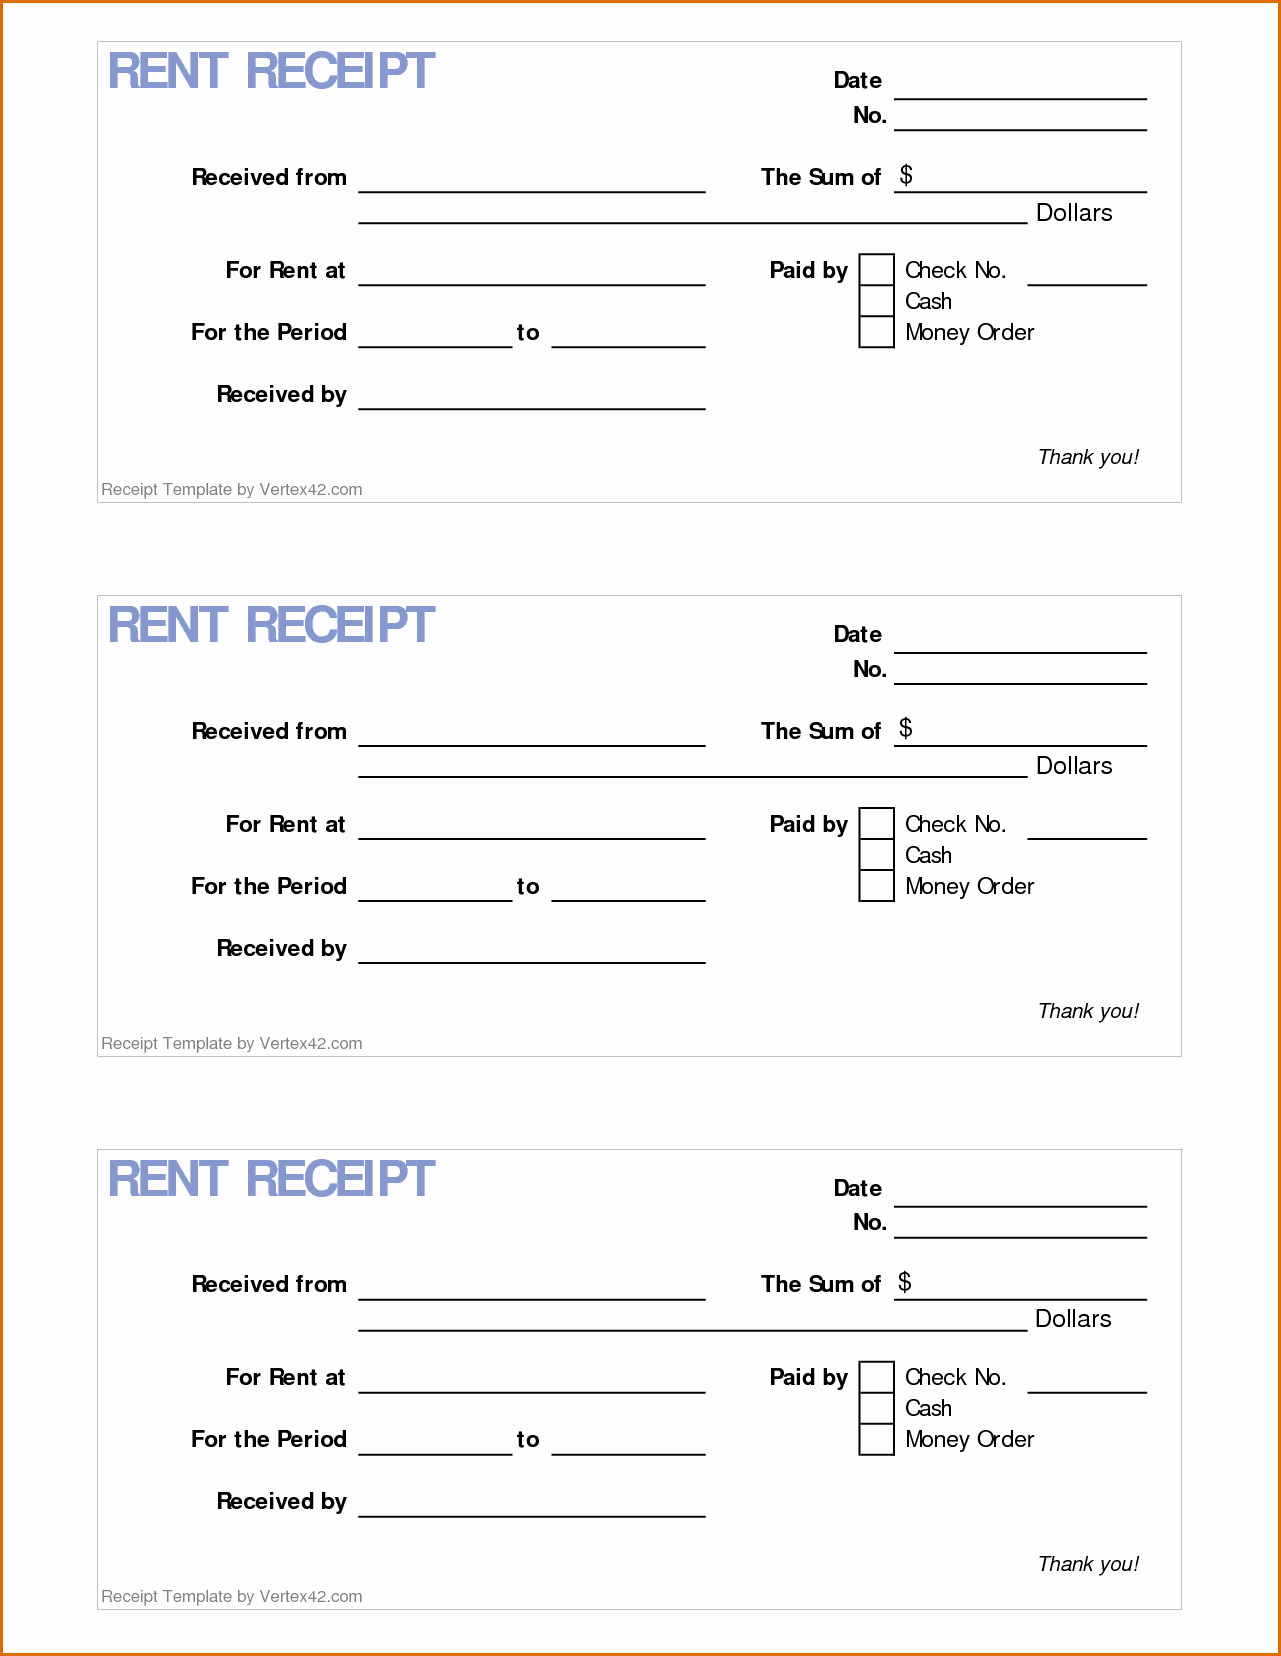 Free Printable Rent Receipt Beautiful 4 Printable Rent Receipt